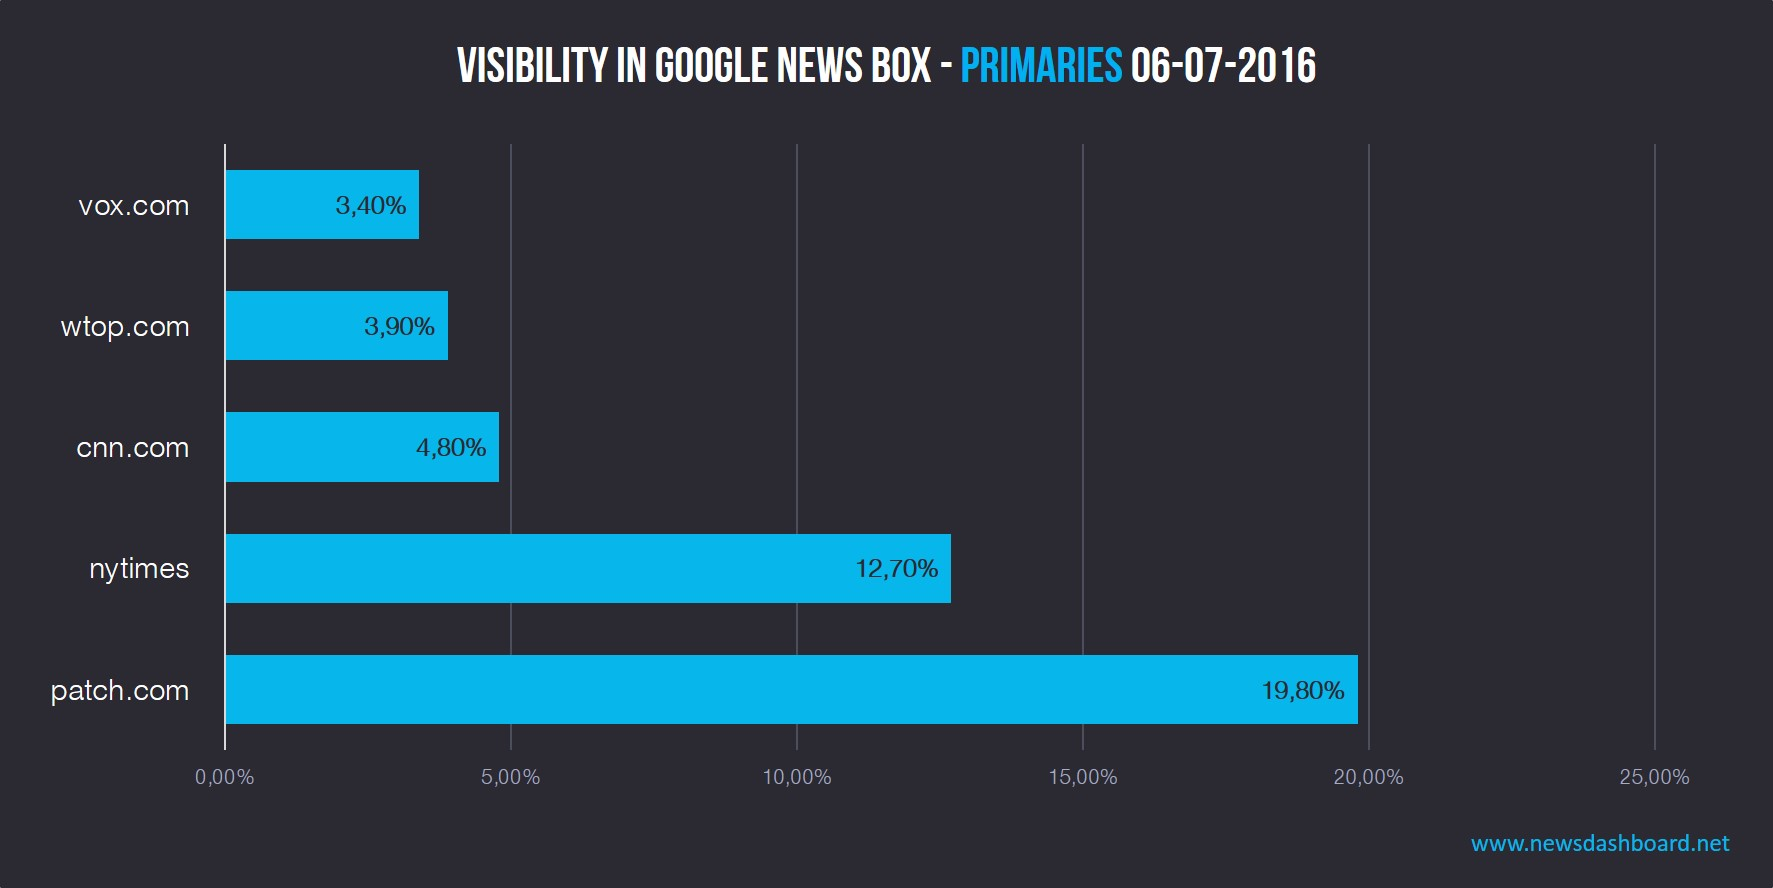 patch.com first, nytimes.com second and cnn.com third in Google News Boxes for primaries